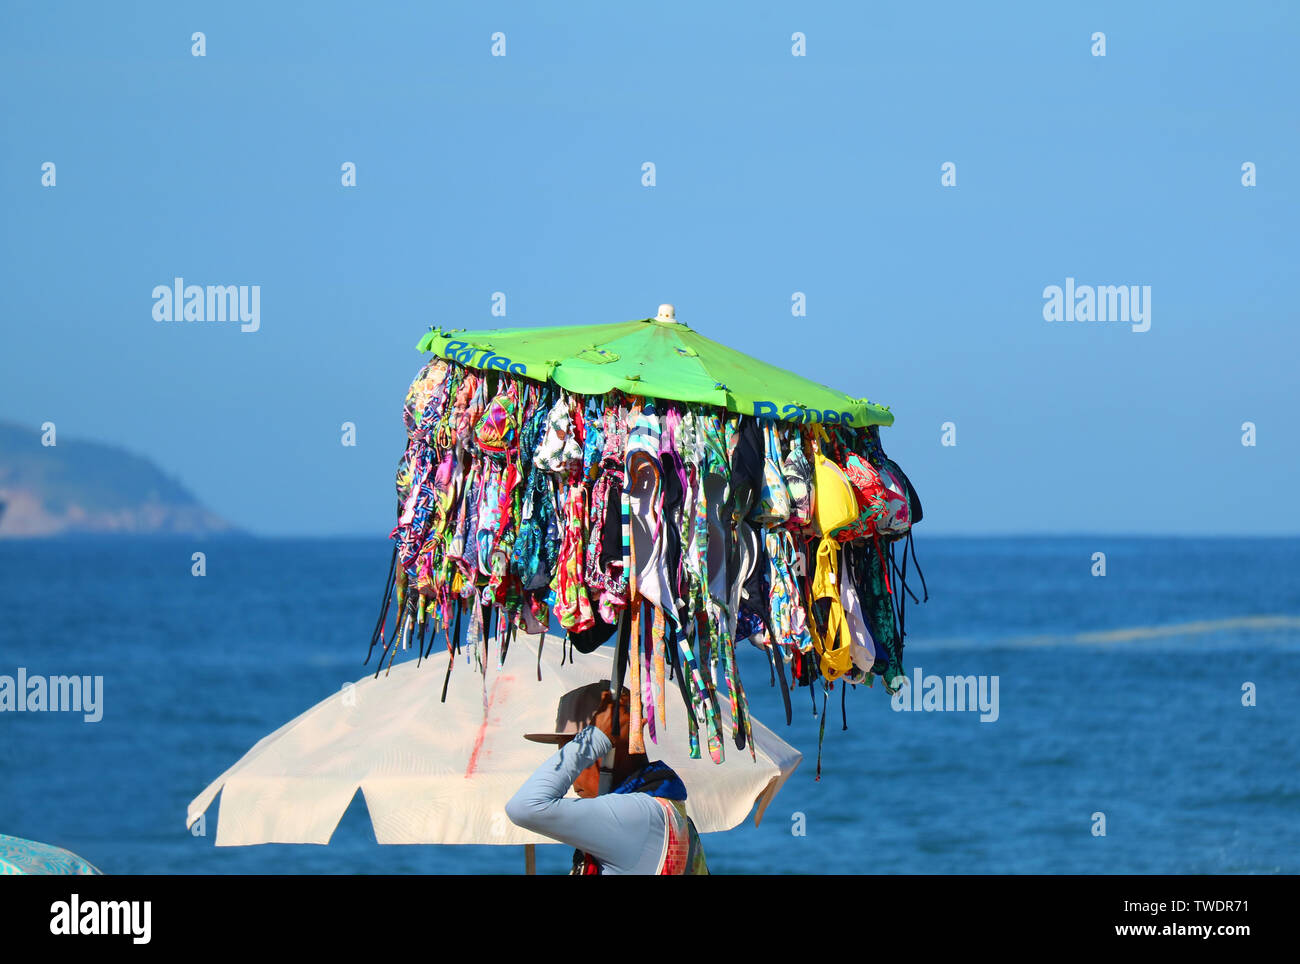 Swimming suit' seller carrying a lot of bikinis walking along the beach with the ocean in background - Stock Image